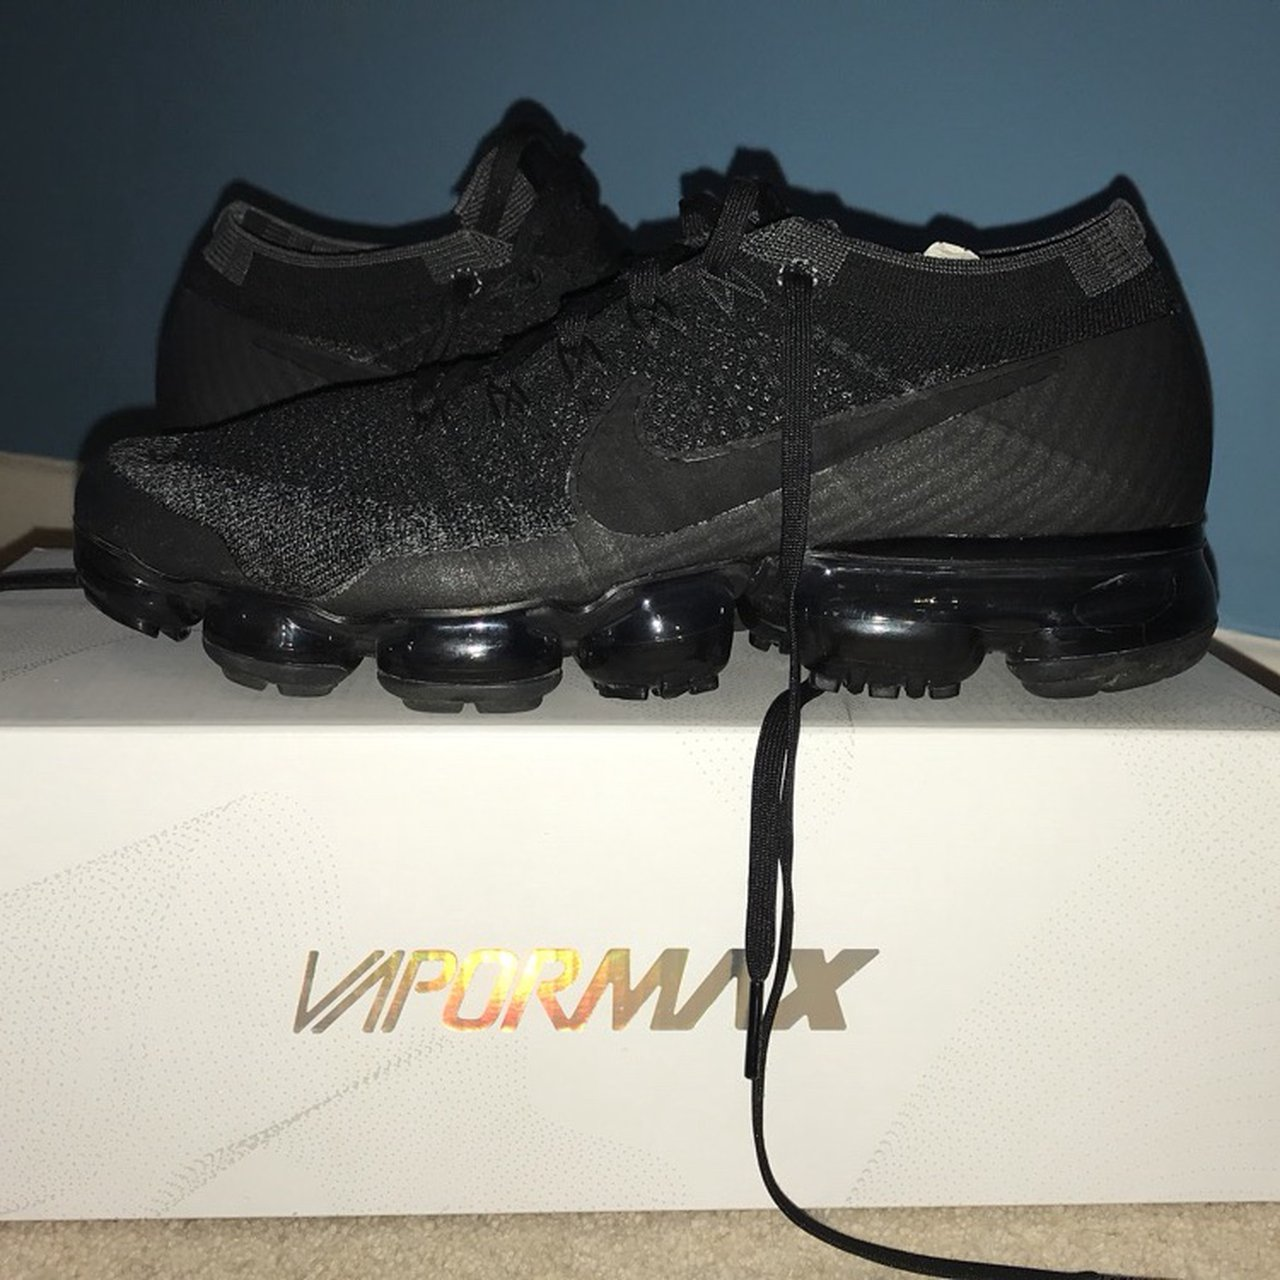 a9c647d65bd7 Need gone quick hence the cheap price •Nike Air Vapormax 3 - Depop